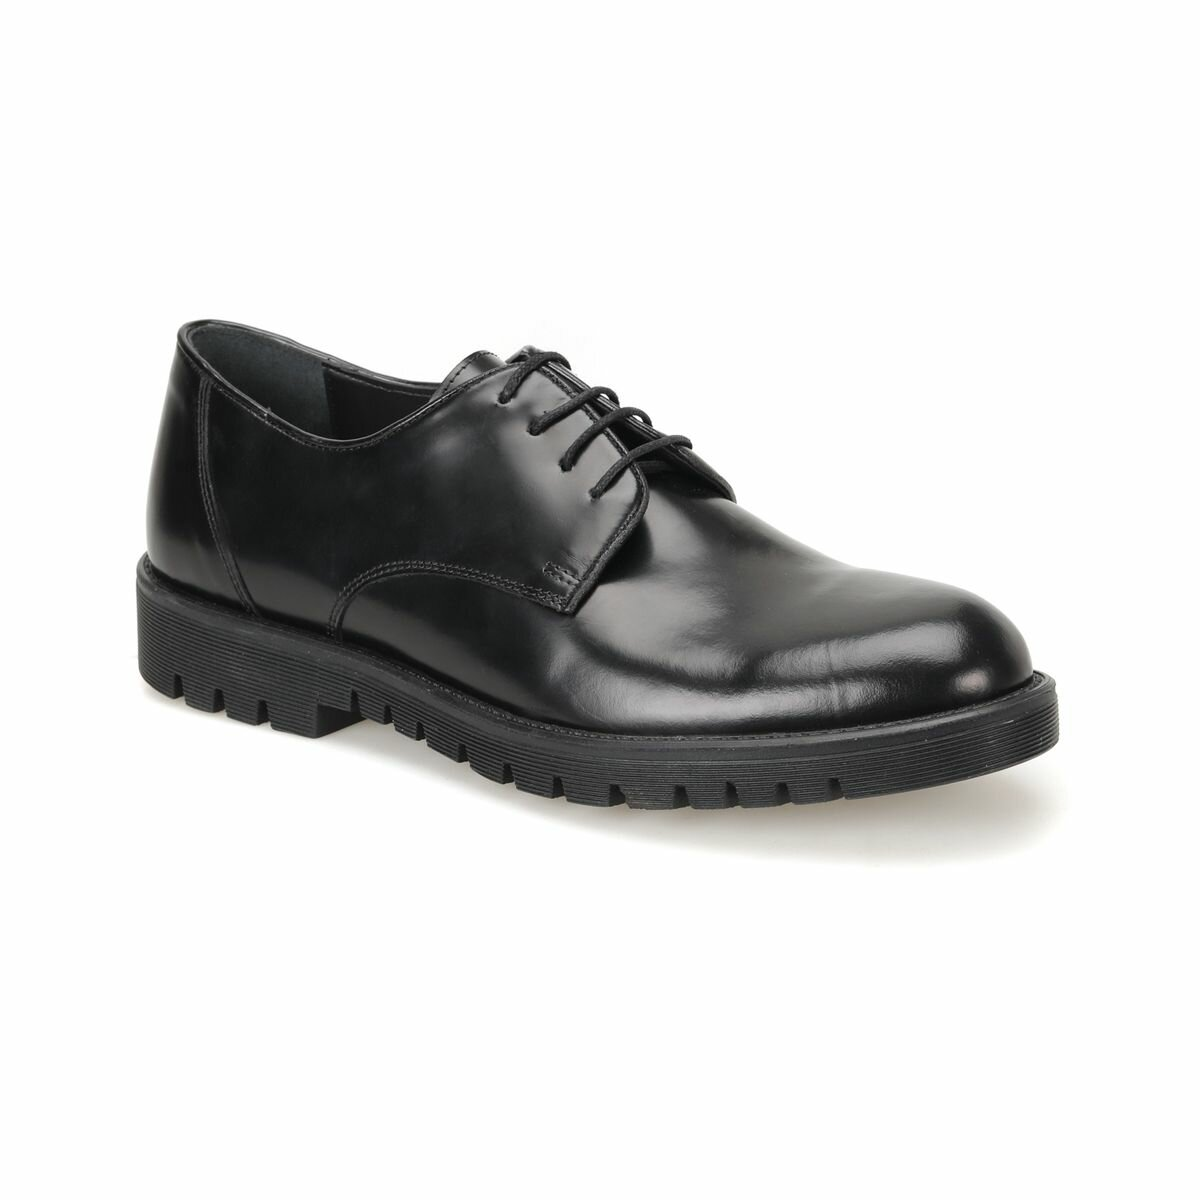 FLO 913 Black Men 'S Classic Shoes Garamond